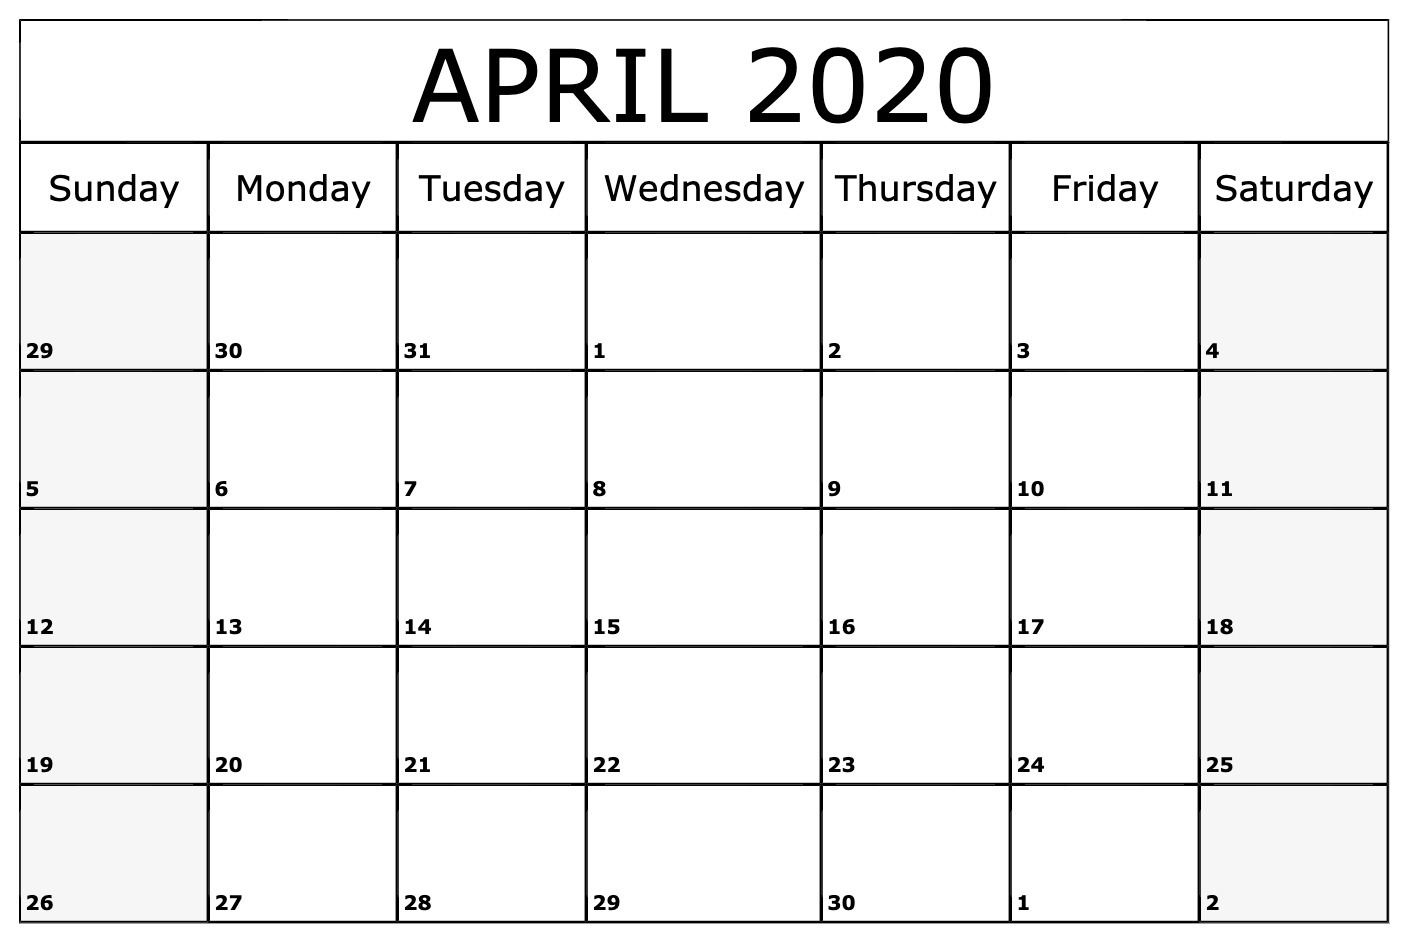 April 2020 Calendar Printable Monthly Template